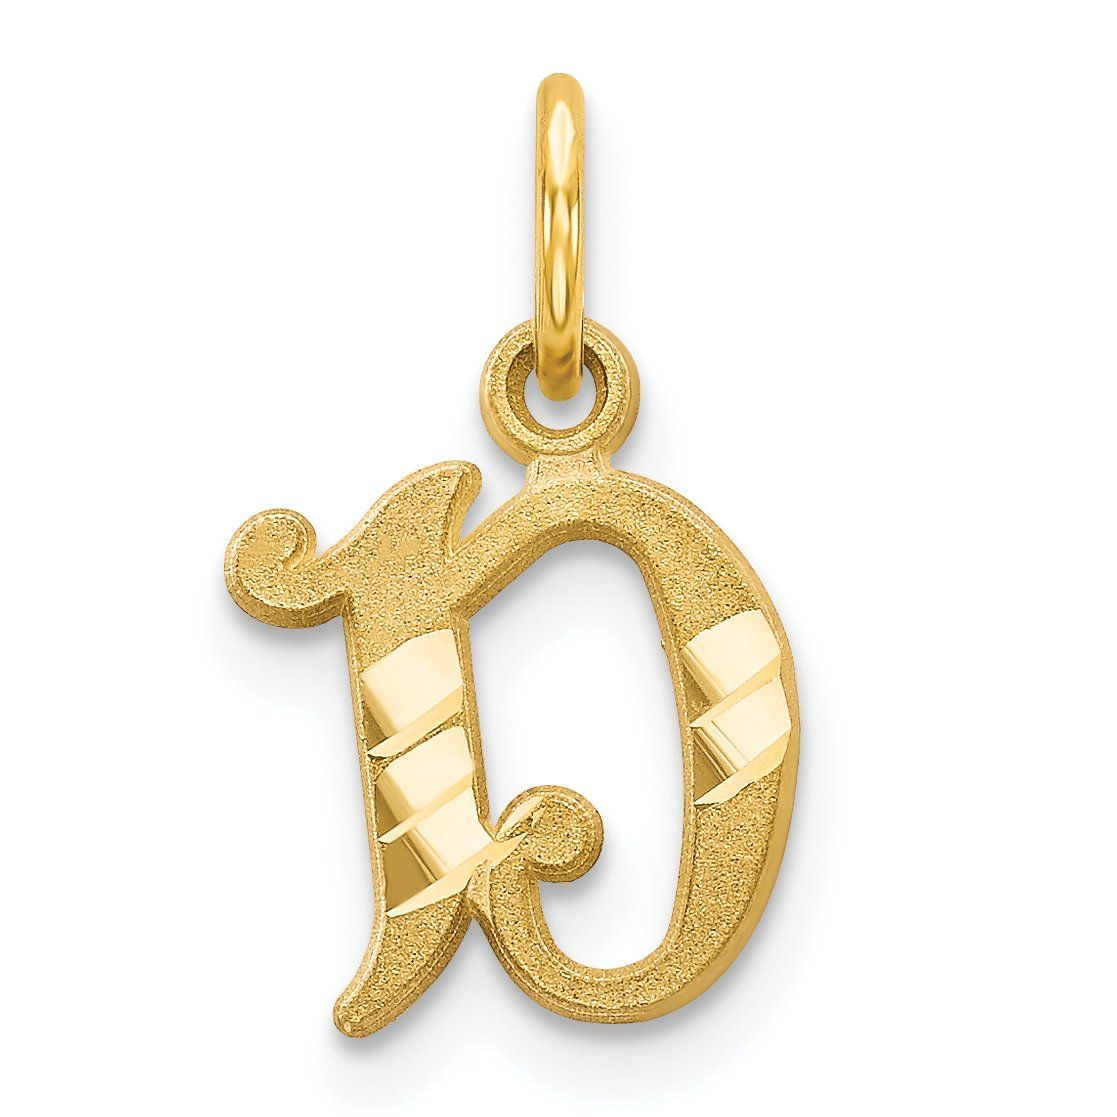 14k Initial D Charm Gold Initial Monogram Pendant Necklace Fine Jewelry Gift